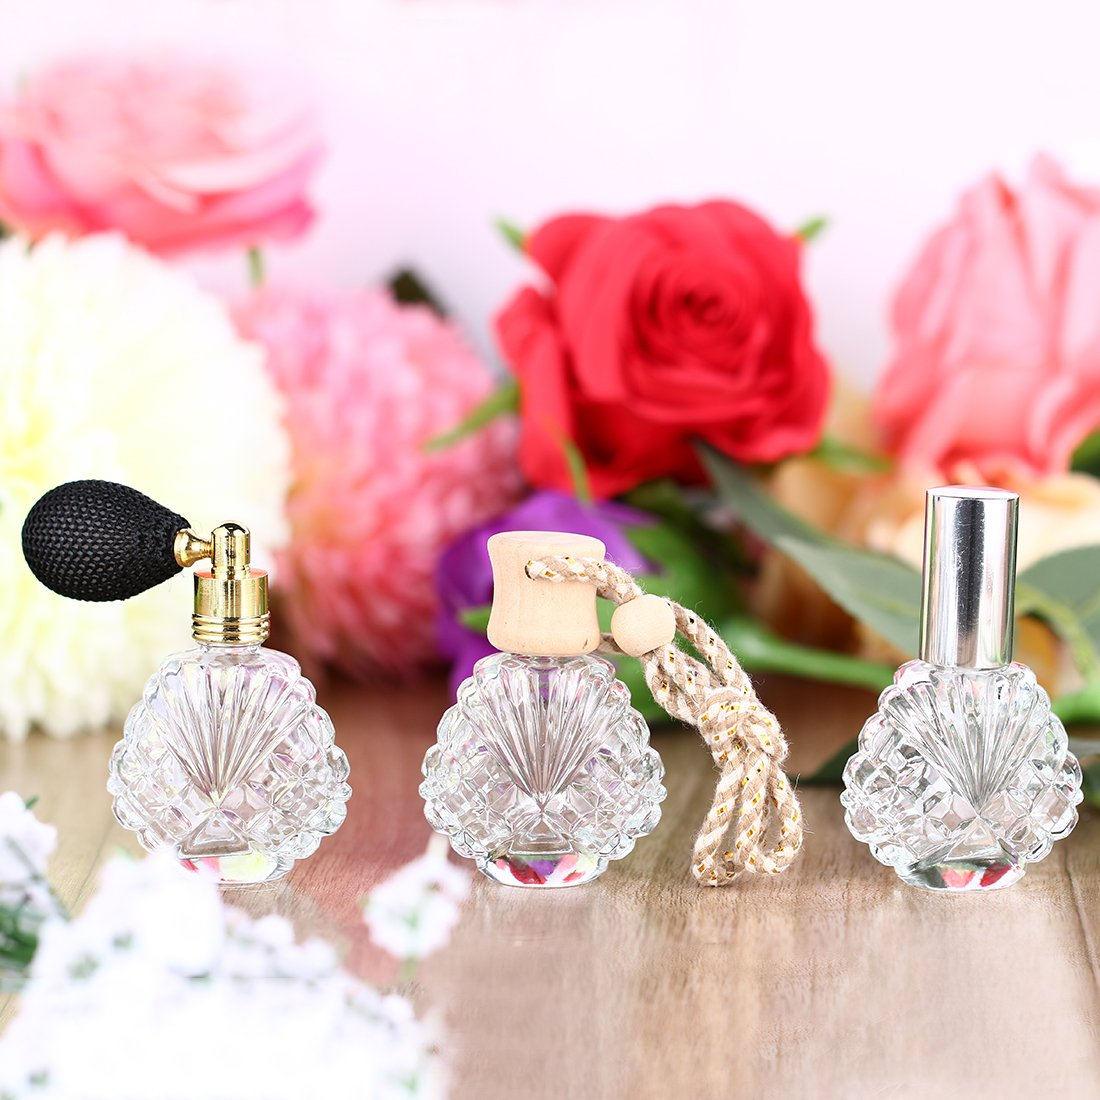 H&D Vintage Peacock Shape Glass Empty Perfume Bottles Spray Wedding Gifts Decor Set 3 3